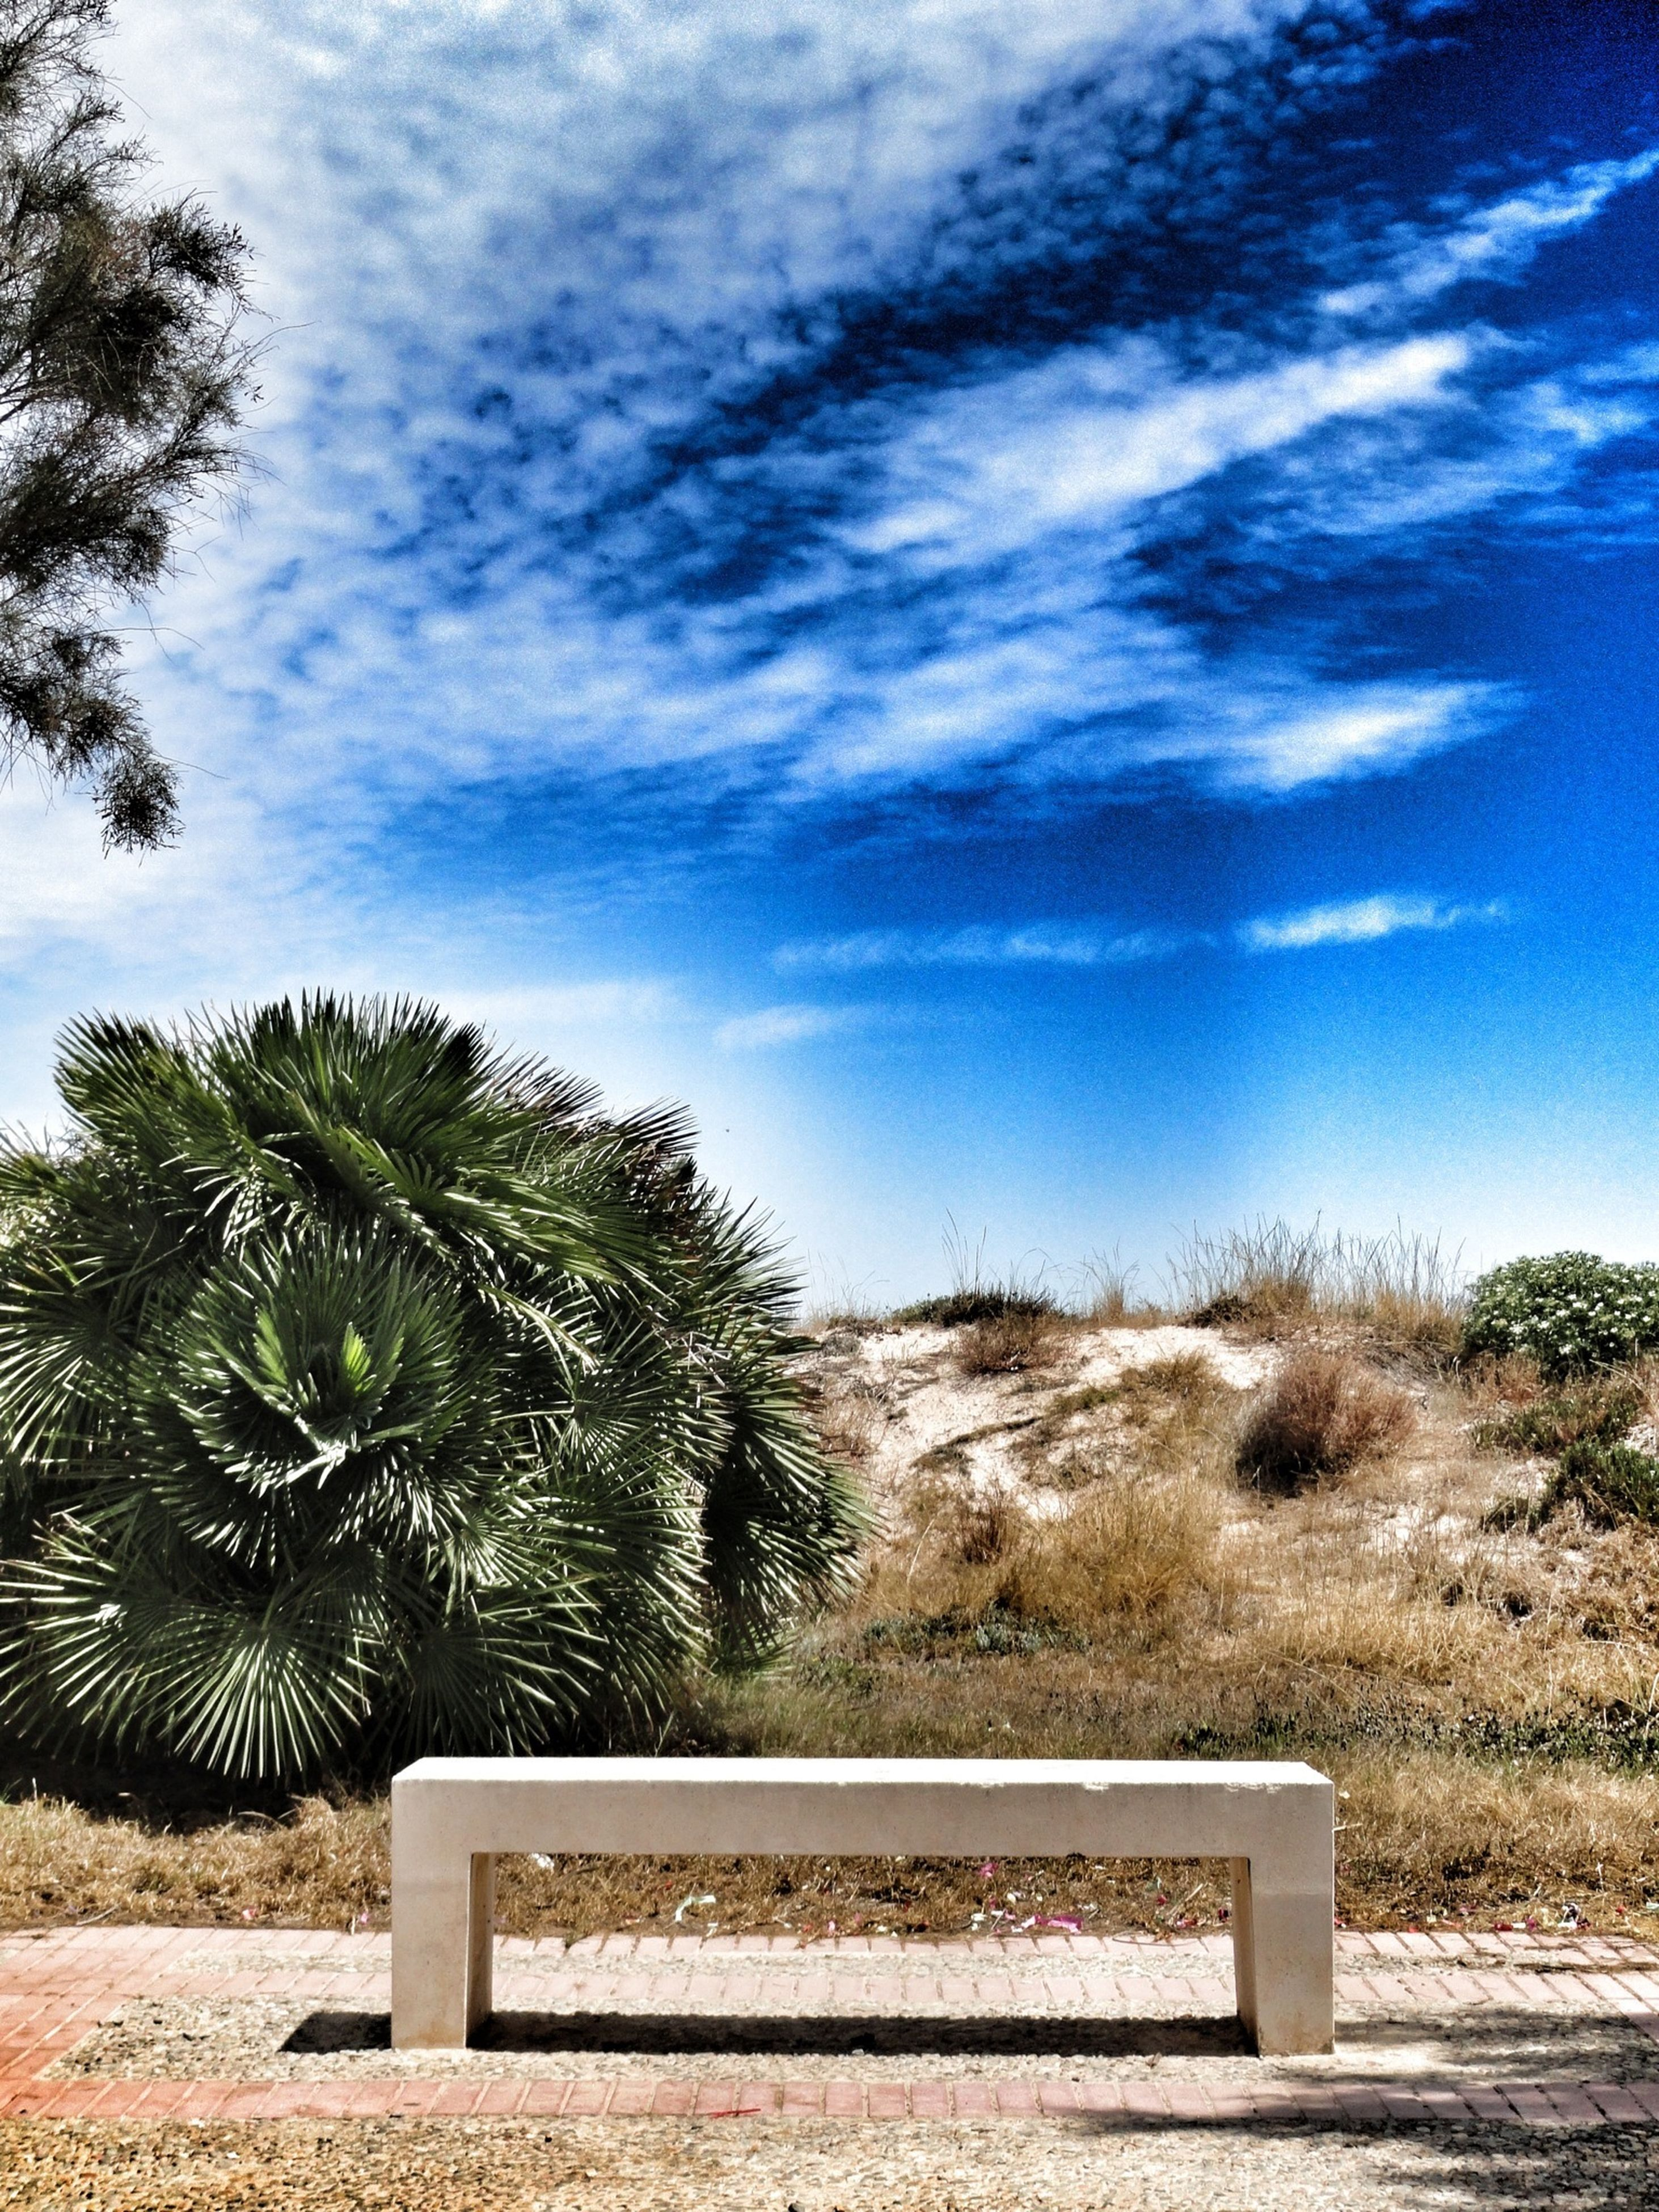 tree, sky, tranquility, tranquil scene, cloud - sky, palm tree, growth, nature, cloud, landscape, scenics, text, communication, beauty in nature, field, day, plant, beach, sand, outdoors